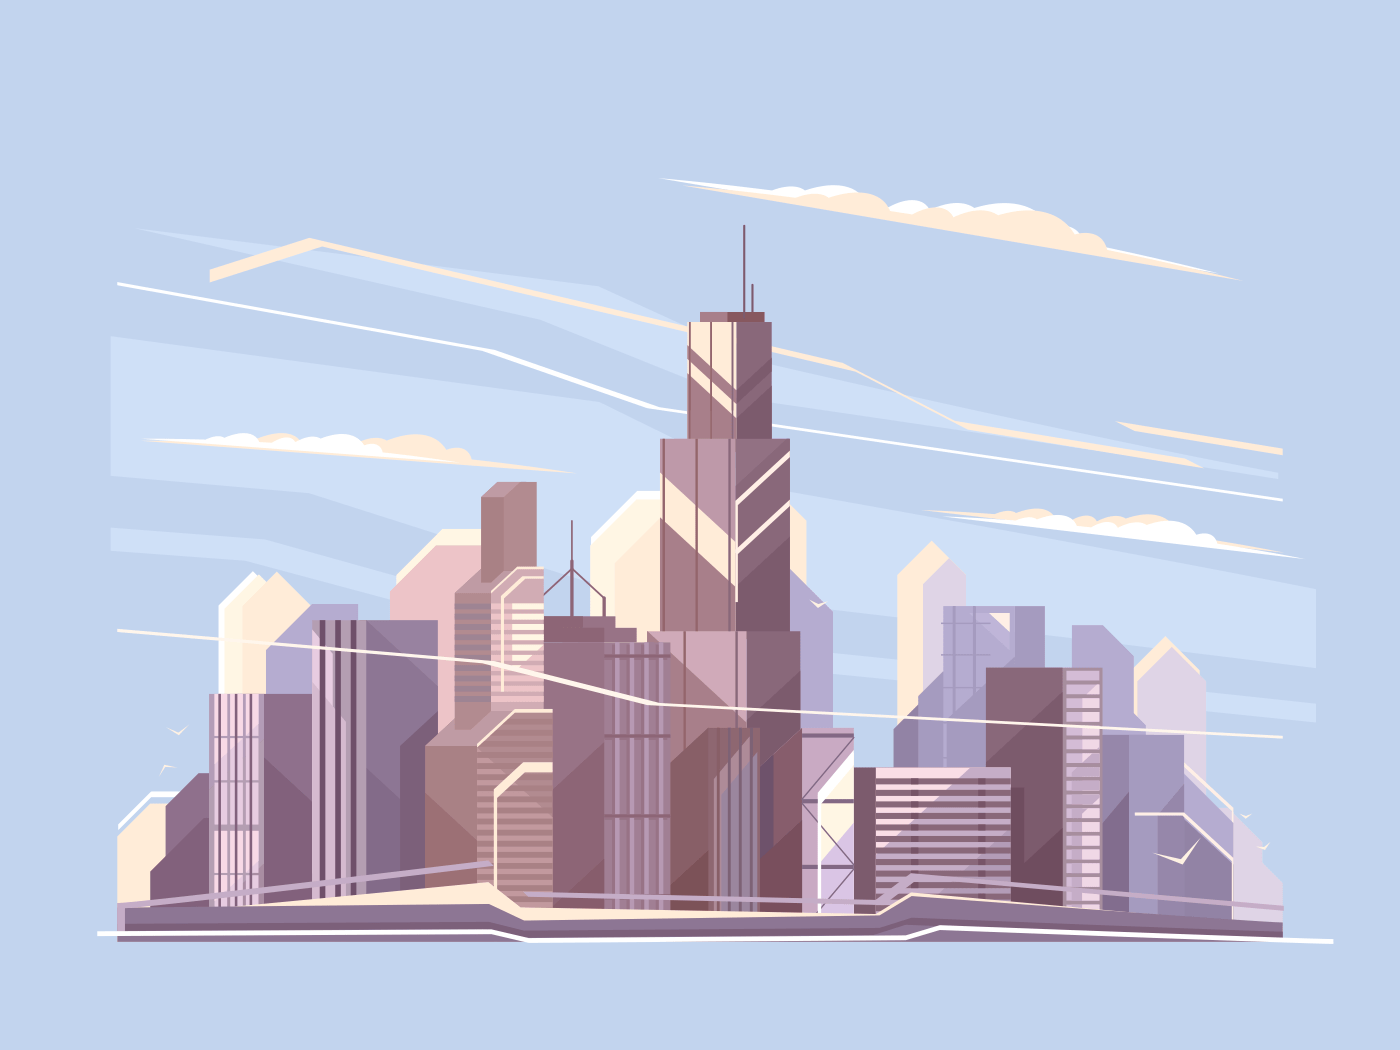 City landscape with skyscrapers illustration